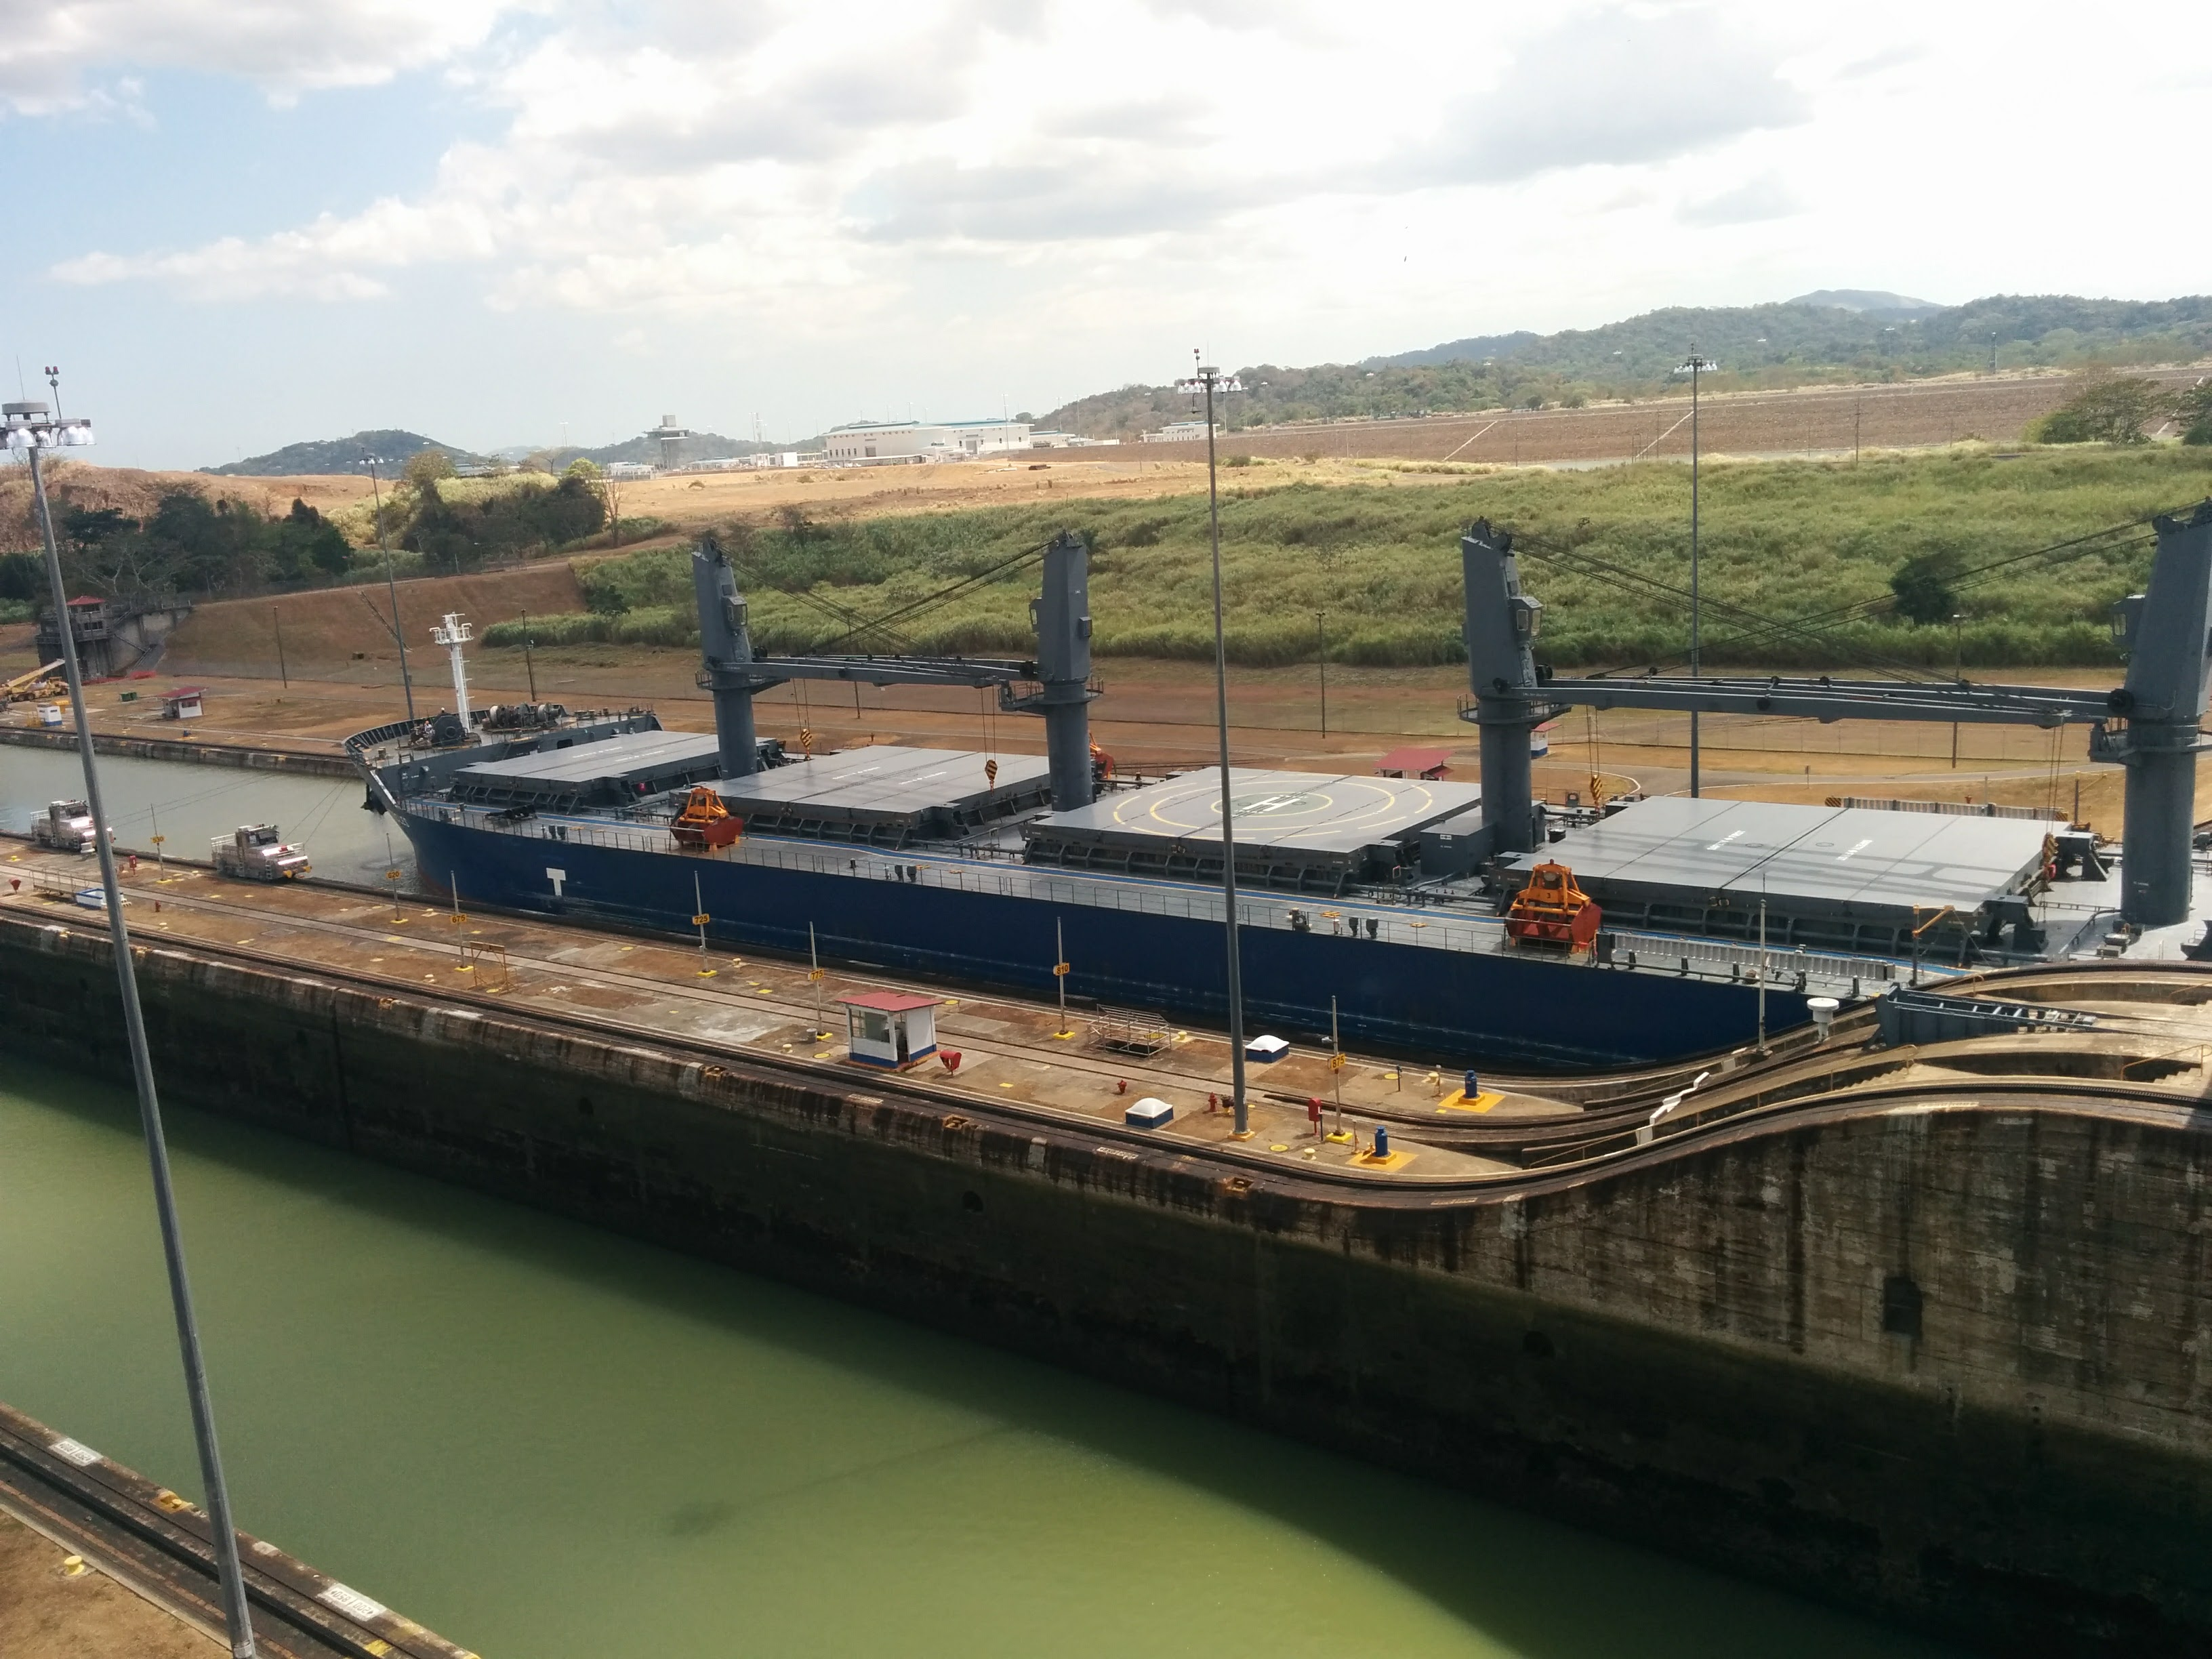 11) Container ship in next lock